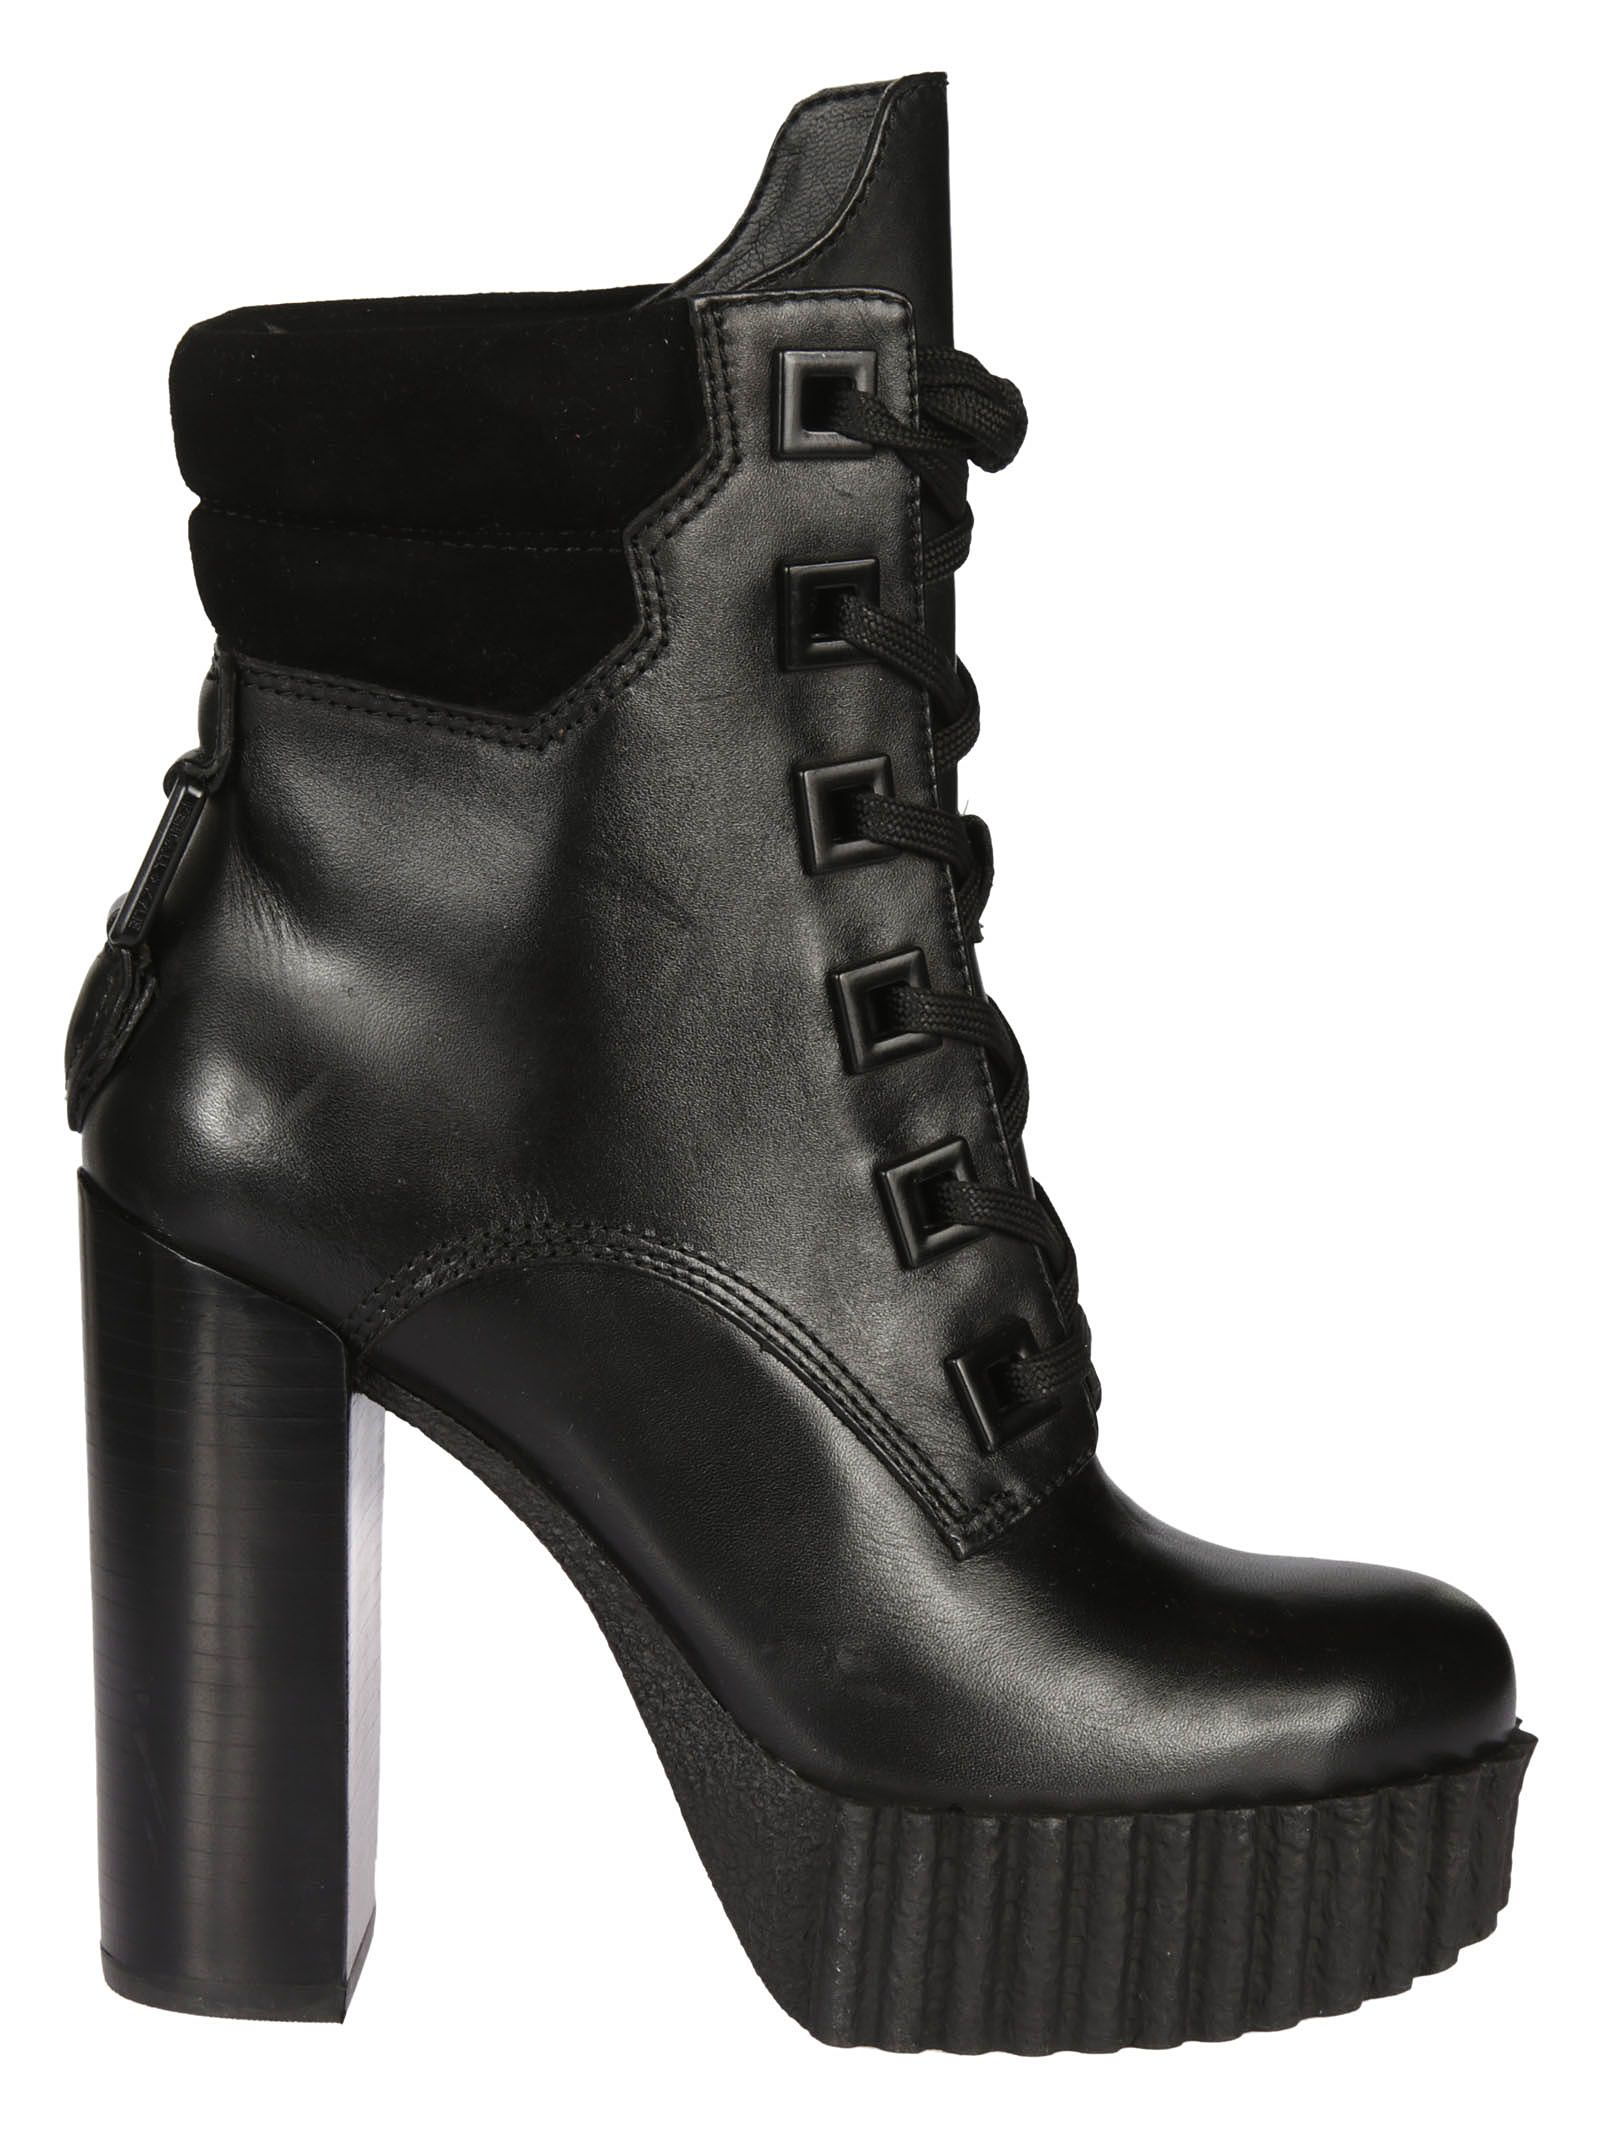 kendall + kylie -   Kkcoty01 Ankle Boots